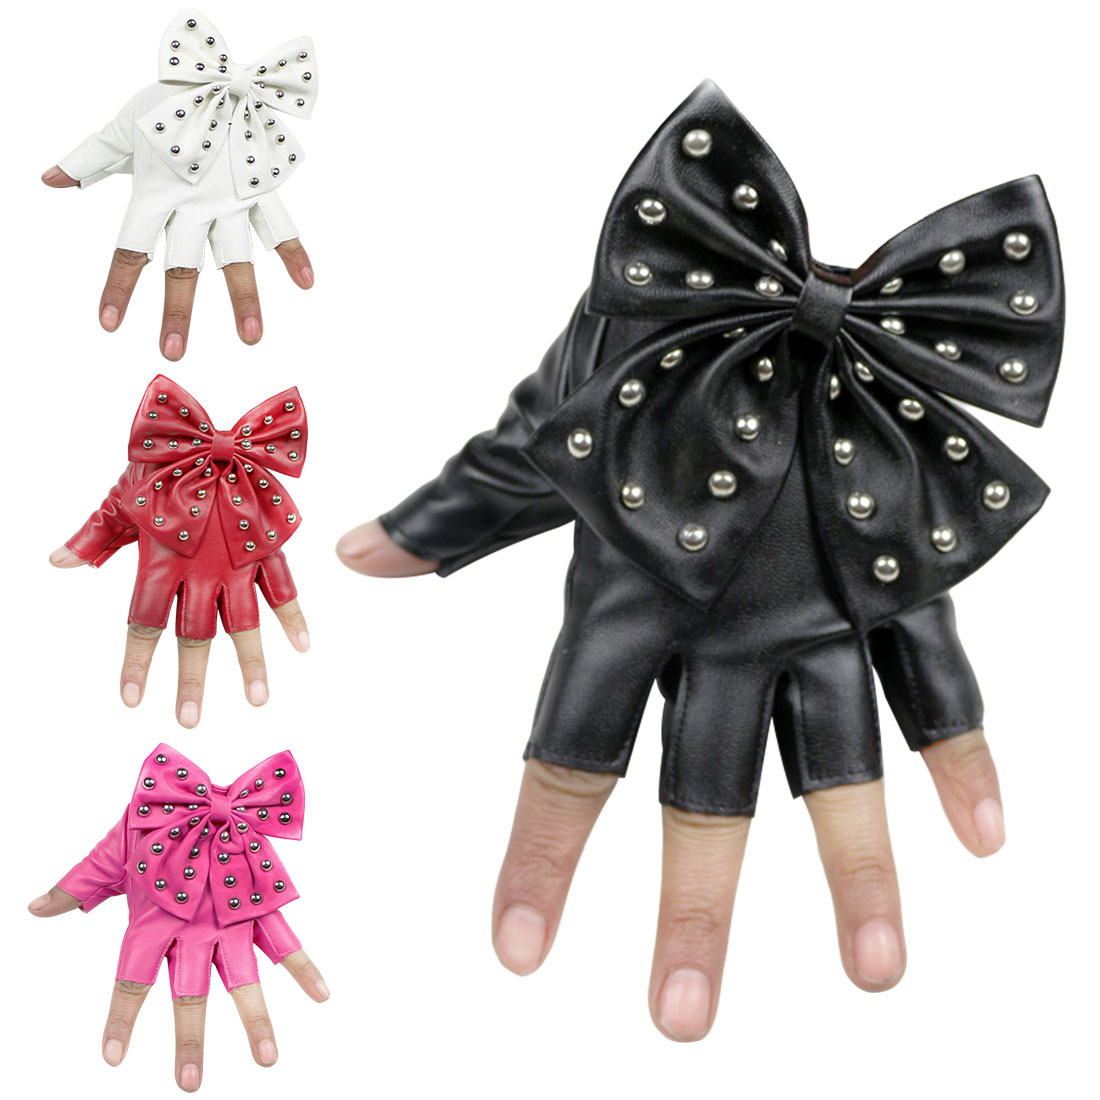 Leather Glvoes Women Winter Big Bow Full Finger Gloves for Dancing Party Retro Vintage Mittens Black White Pink Red in Women 39 s Gloves from Apparel Accessories